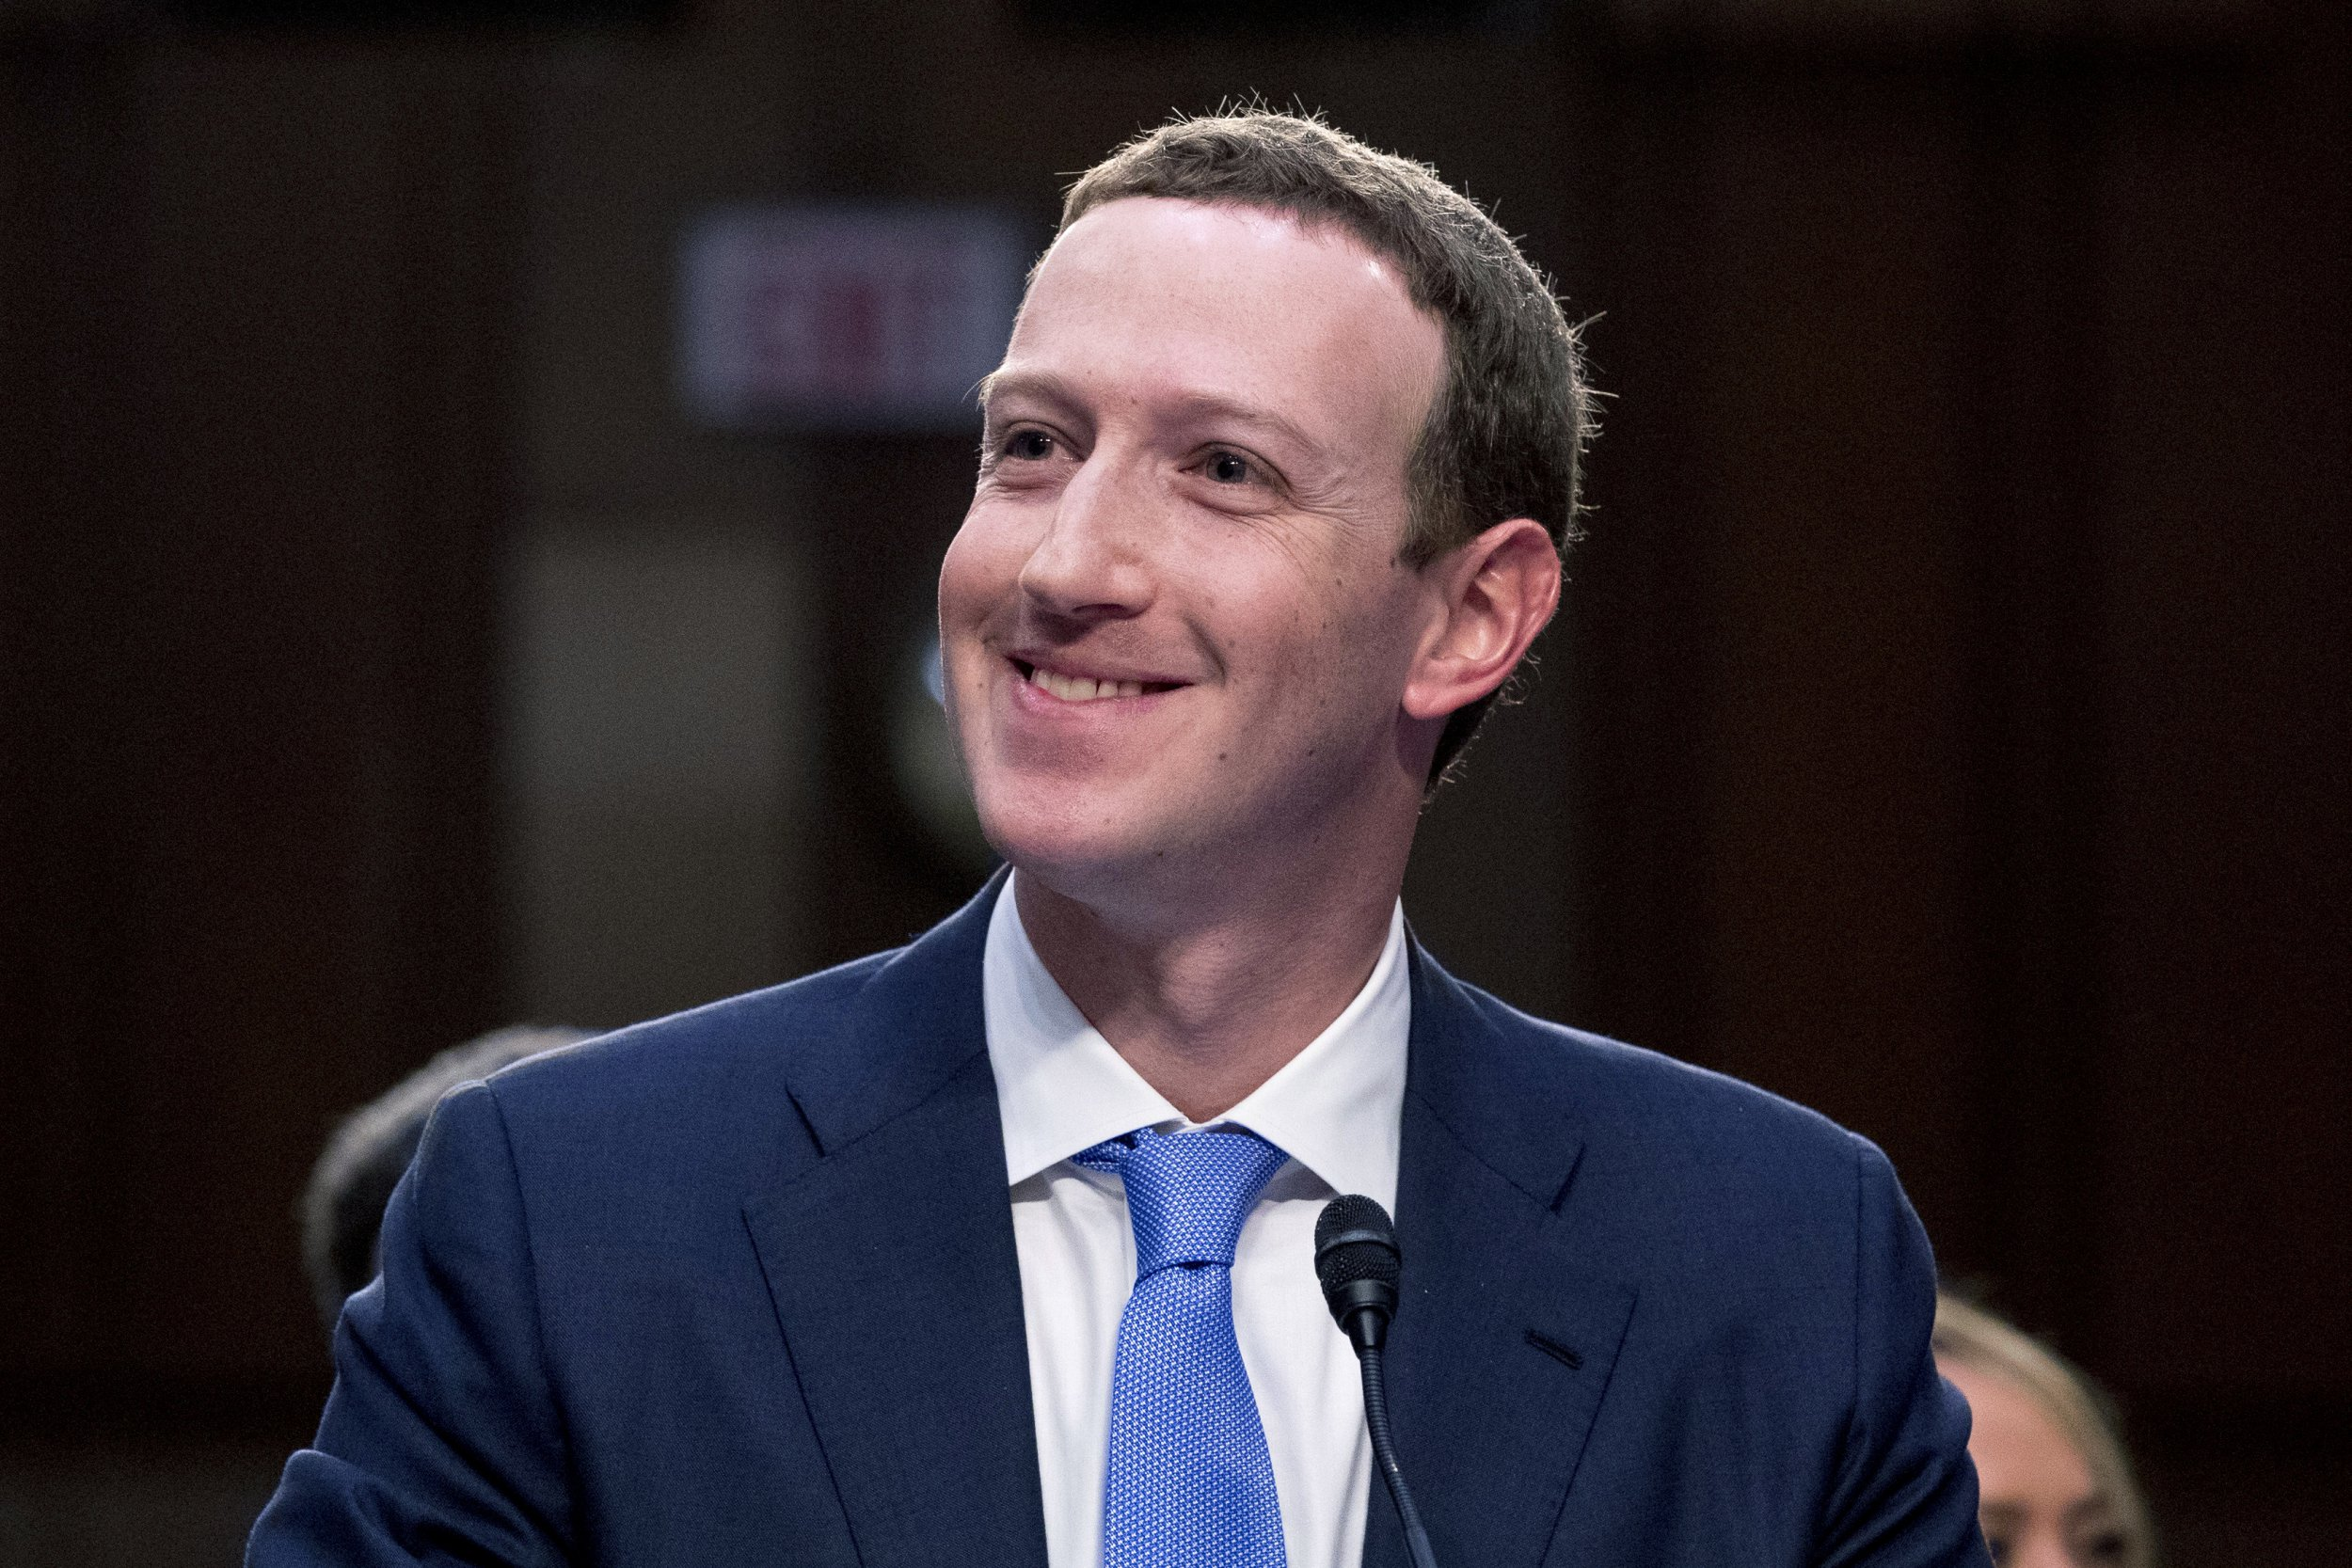 Mark Zuckerberg's personal worth surges by £2 billion after testimony